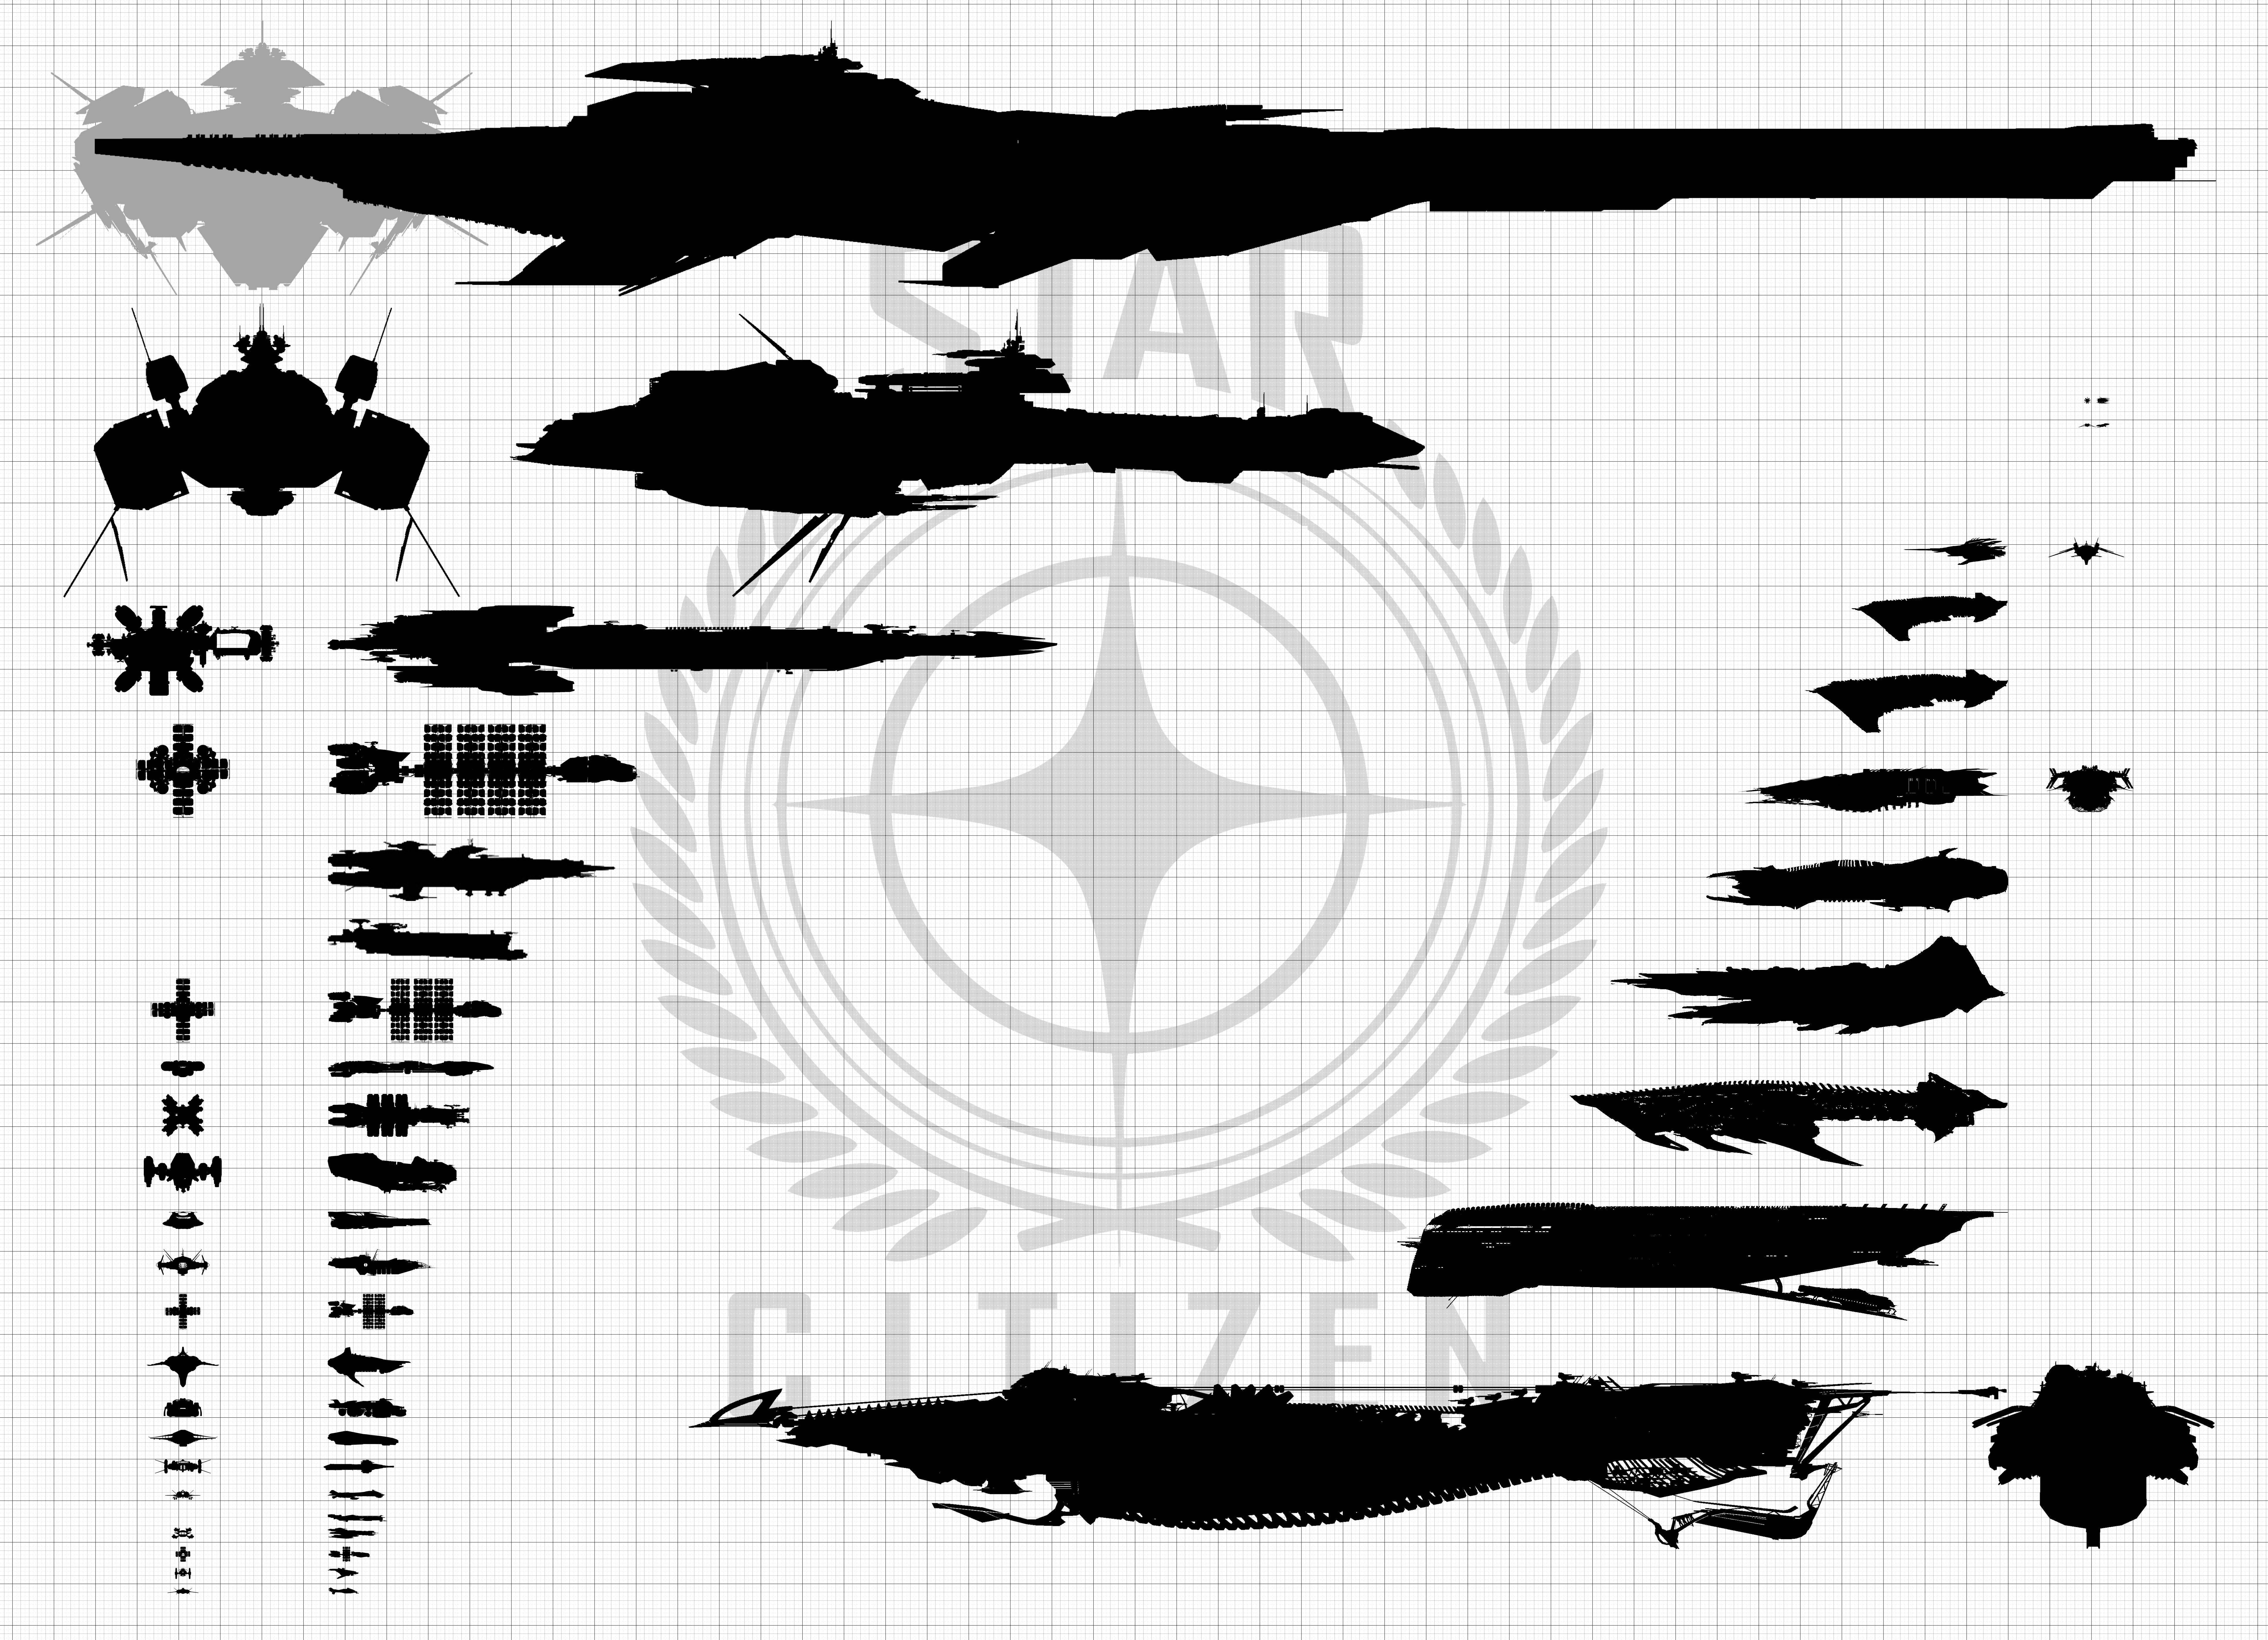 star citizen ship size comparison chart - photo #2